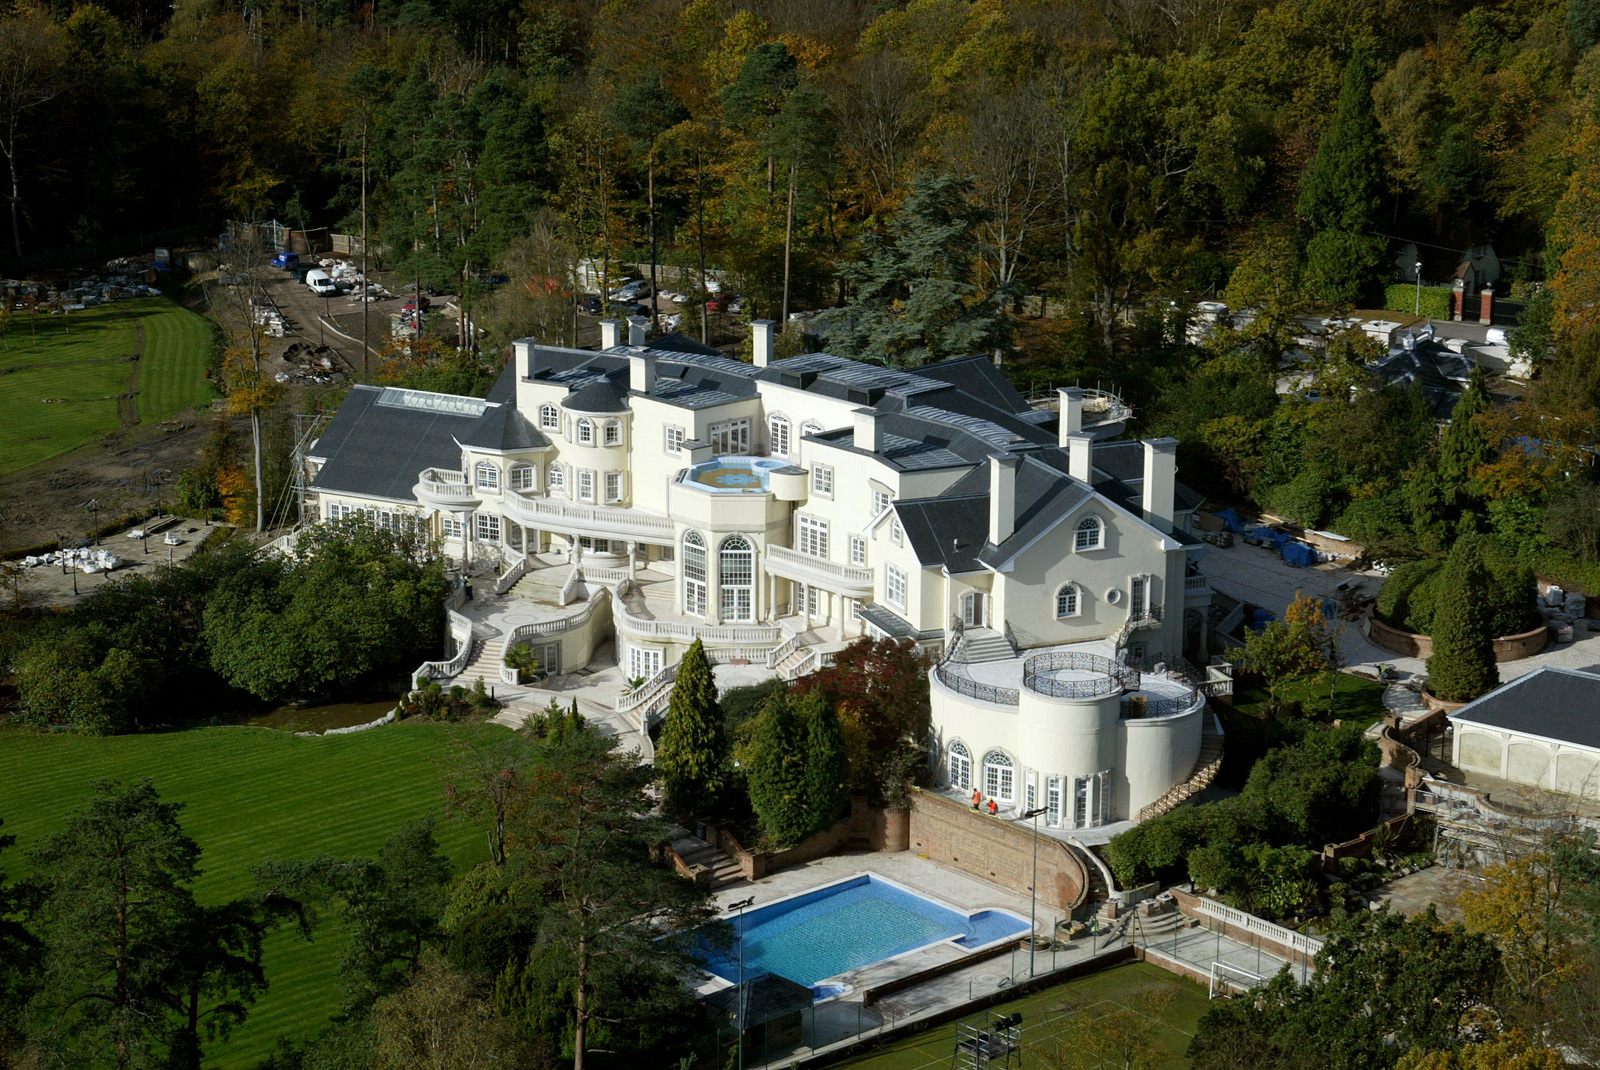 Updown court most expensive home in britain on sale for for Most luxurious house